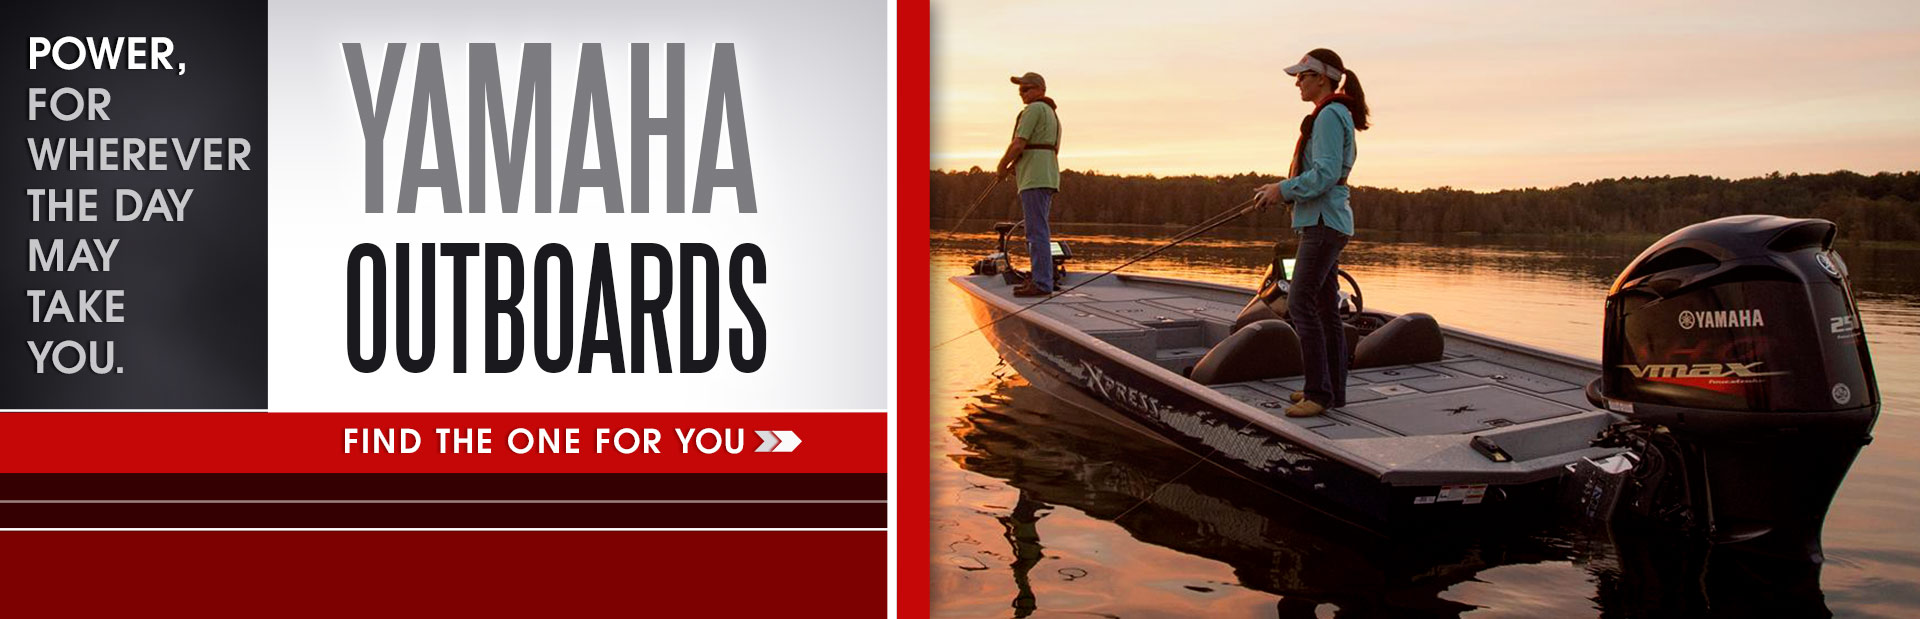 Yamaha outboards offer power for wherever the day may take you. Click here to browse our selection.